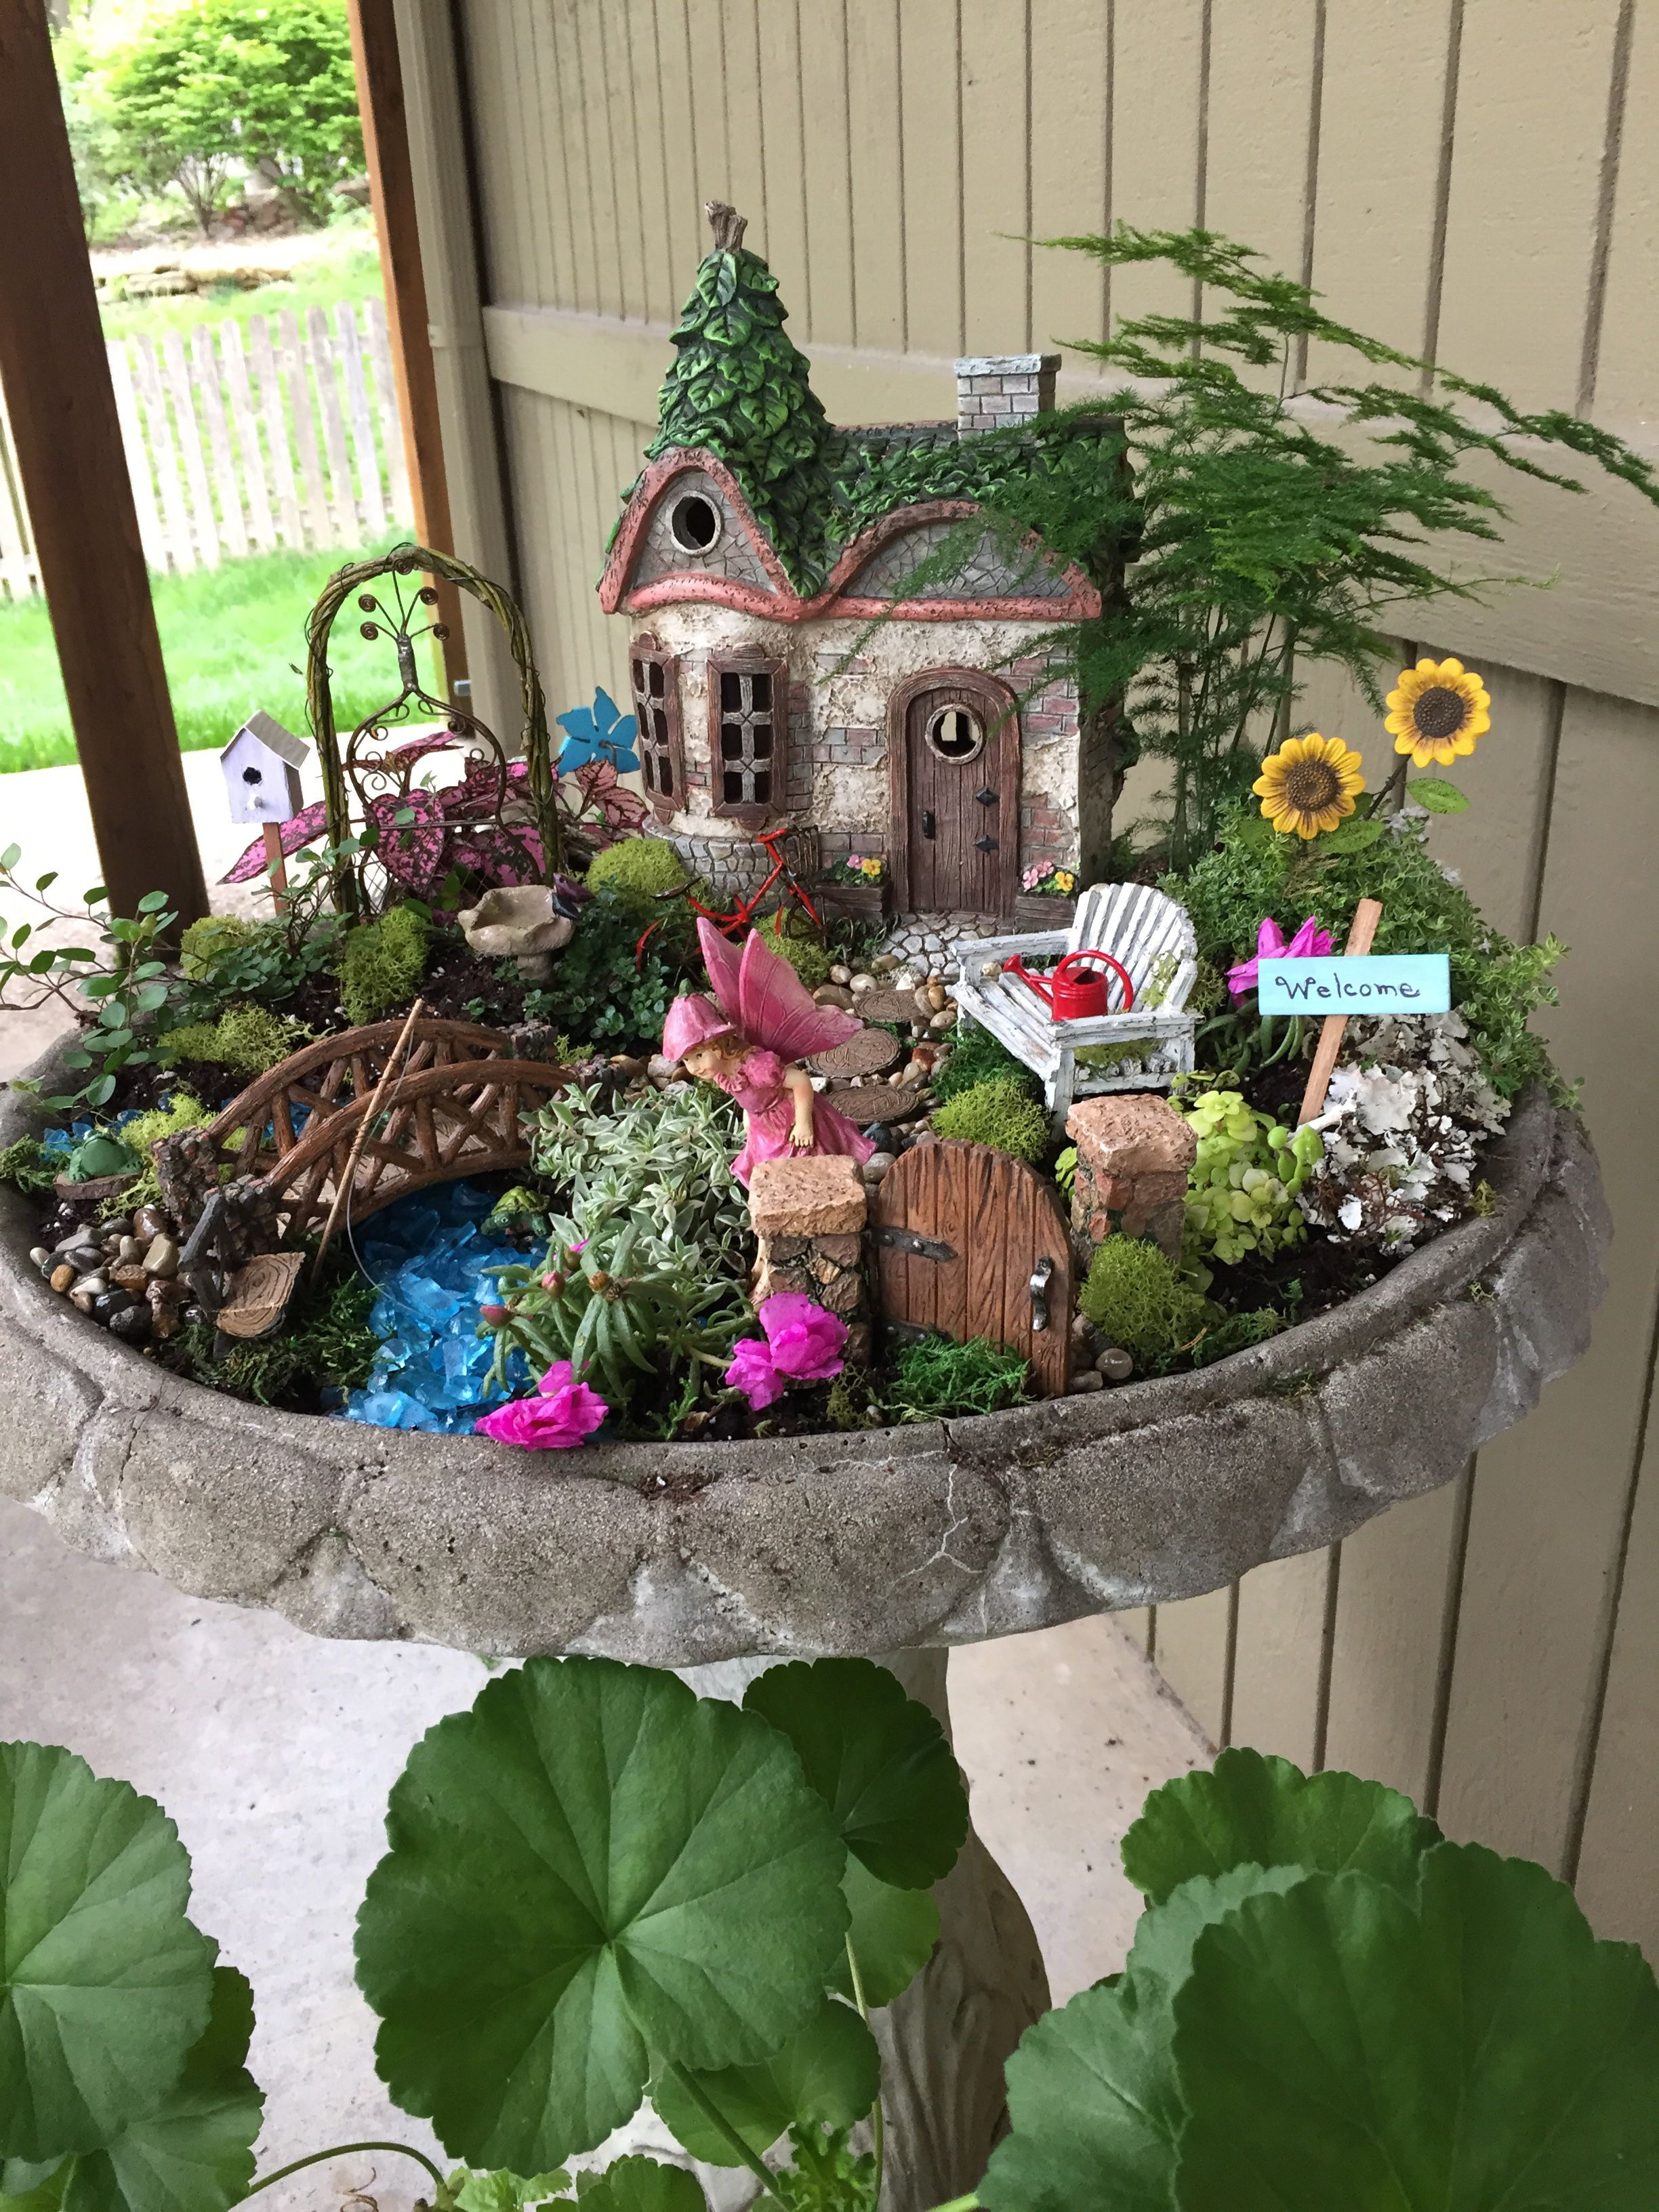 Fairy Garden. This was a fun project that my granddaughter really enjoyed helping with. - My Garden Your Garden